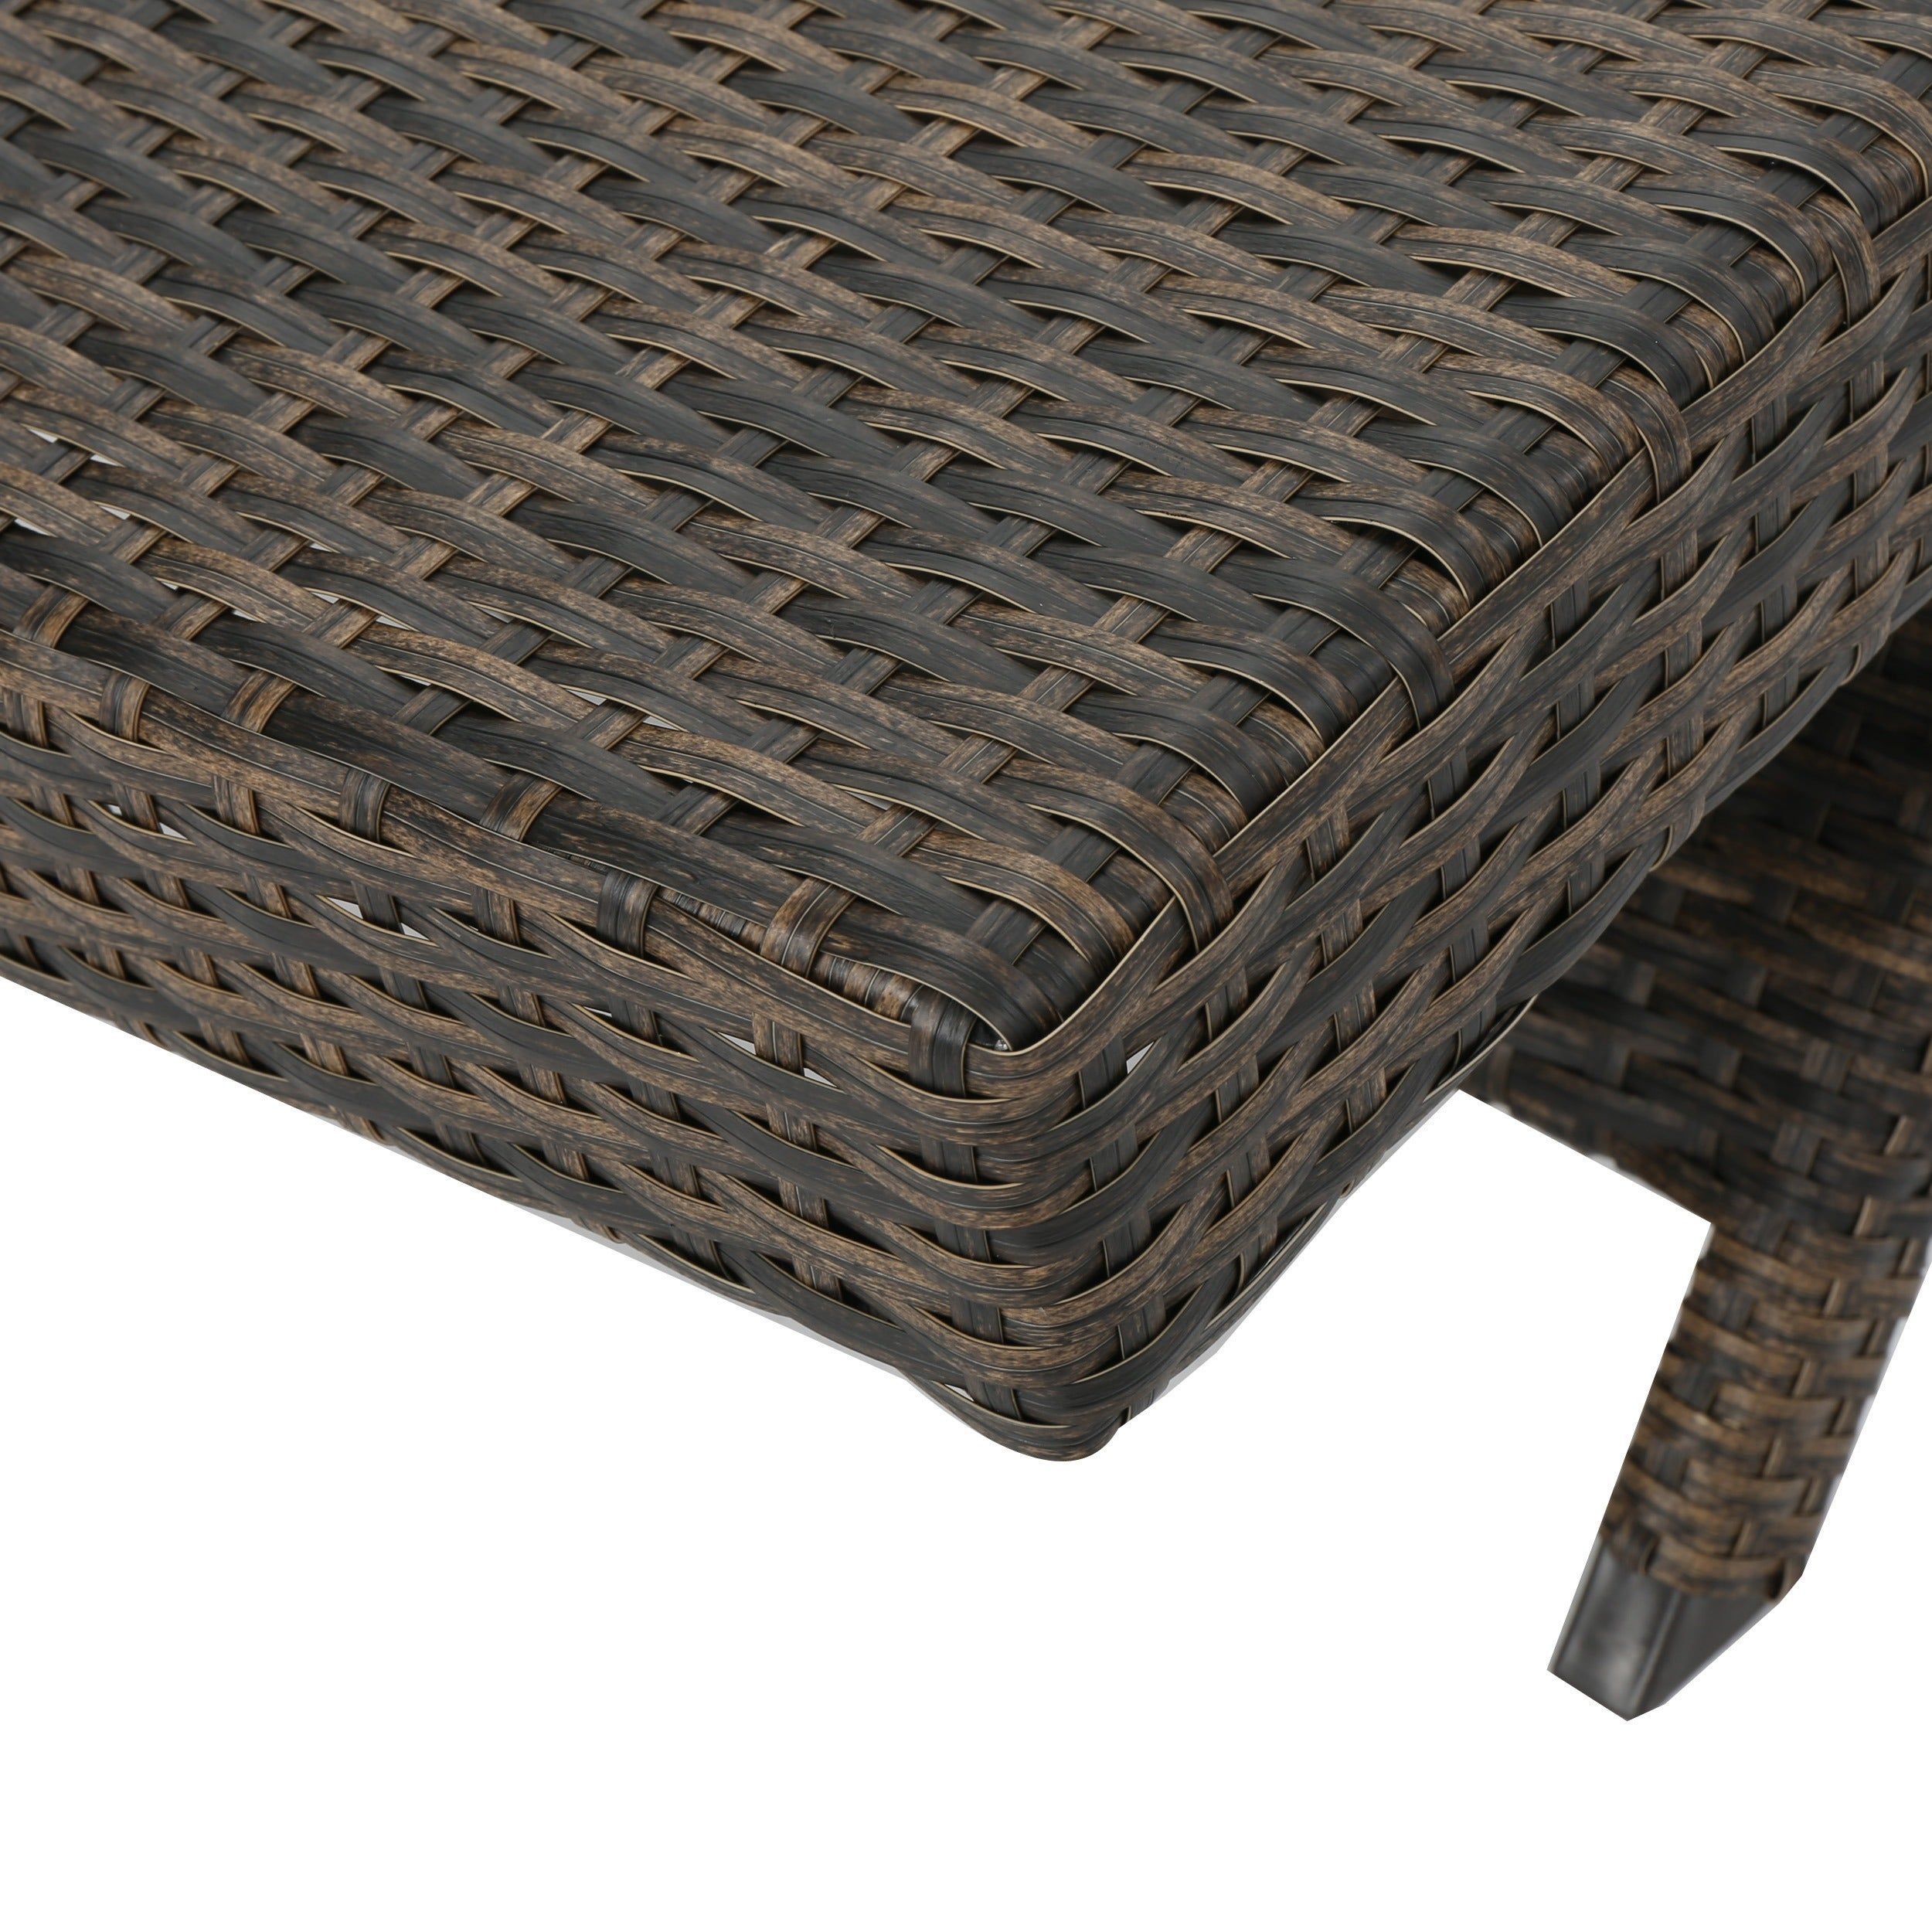 Round Folding Dining Table, Shop Thira Wicker Chaise Lounge Chair Set Of 2 By Christopher Knight Home Overstock 15425643